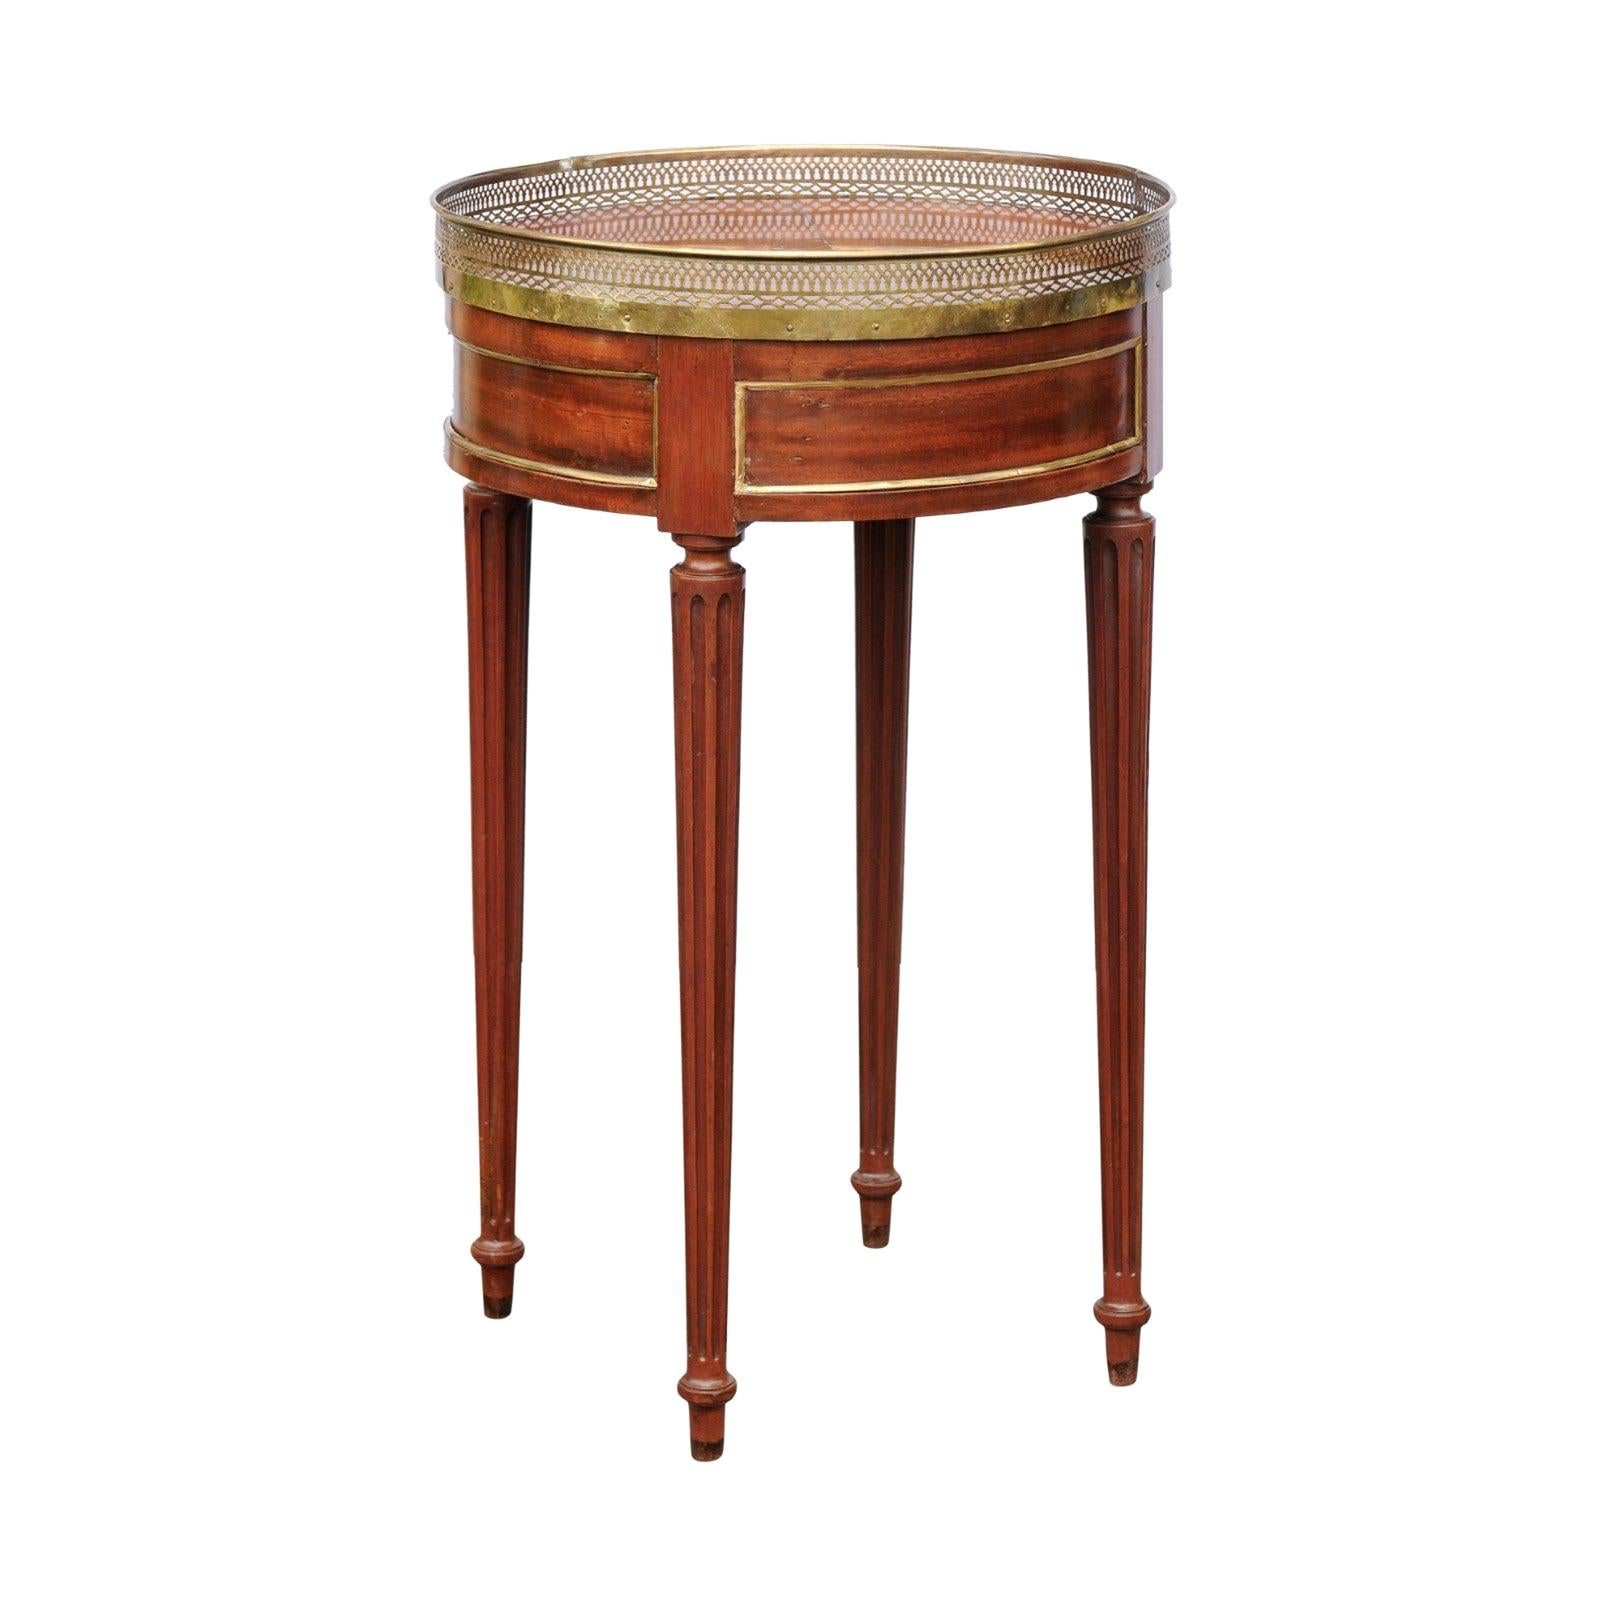 French Louis XVI Style Walnut Guéridon Table with Brass Gallery and Fluted Legs